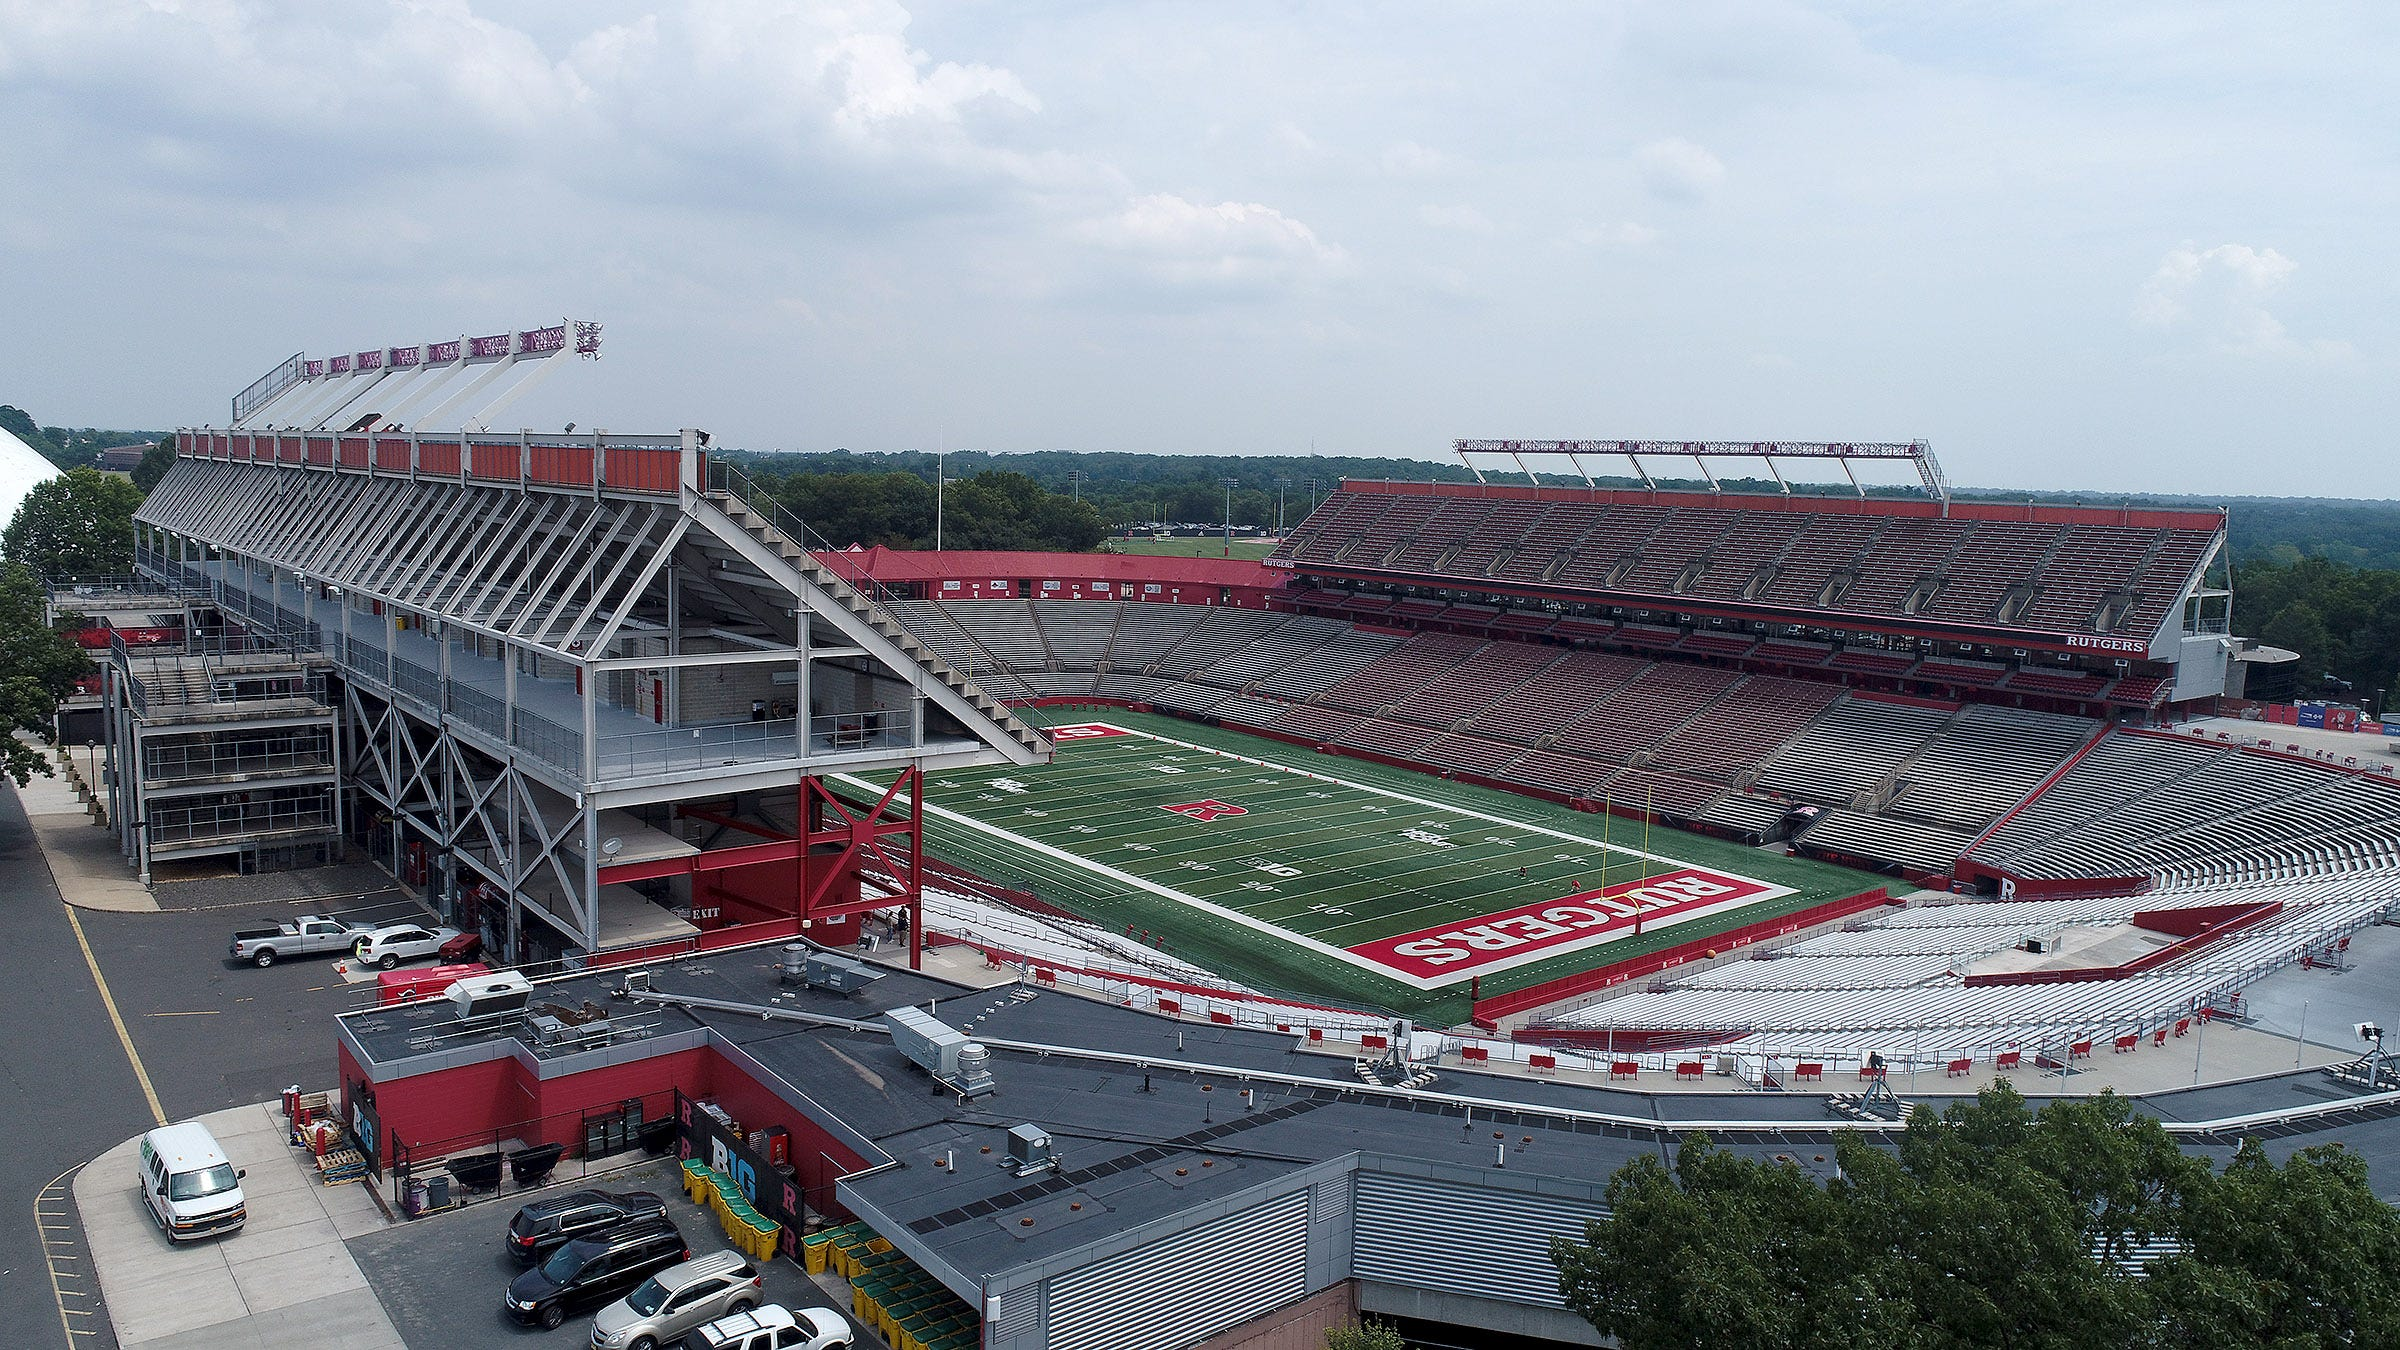 The Rutgers football stadium in Piscataway. In 2019 Rutgers announced that it reached a deal with SHI International Corp., a global IT provider, for naming rights to the facility.